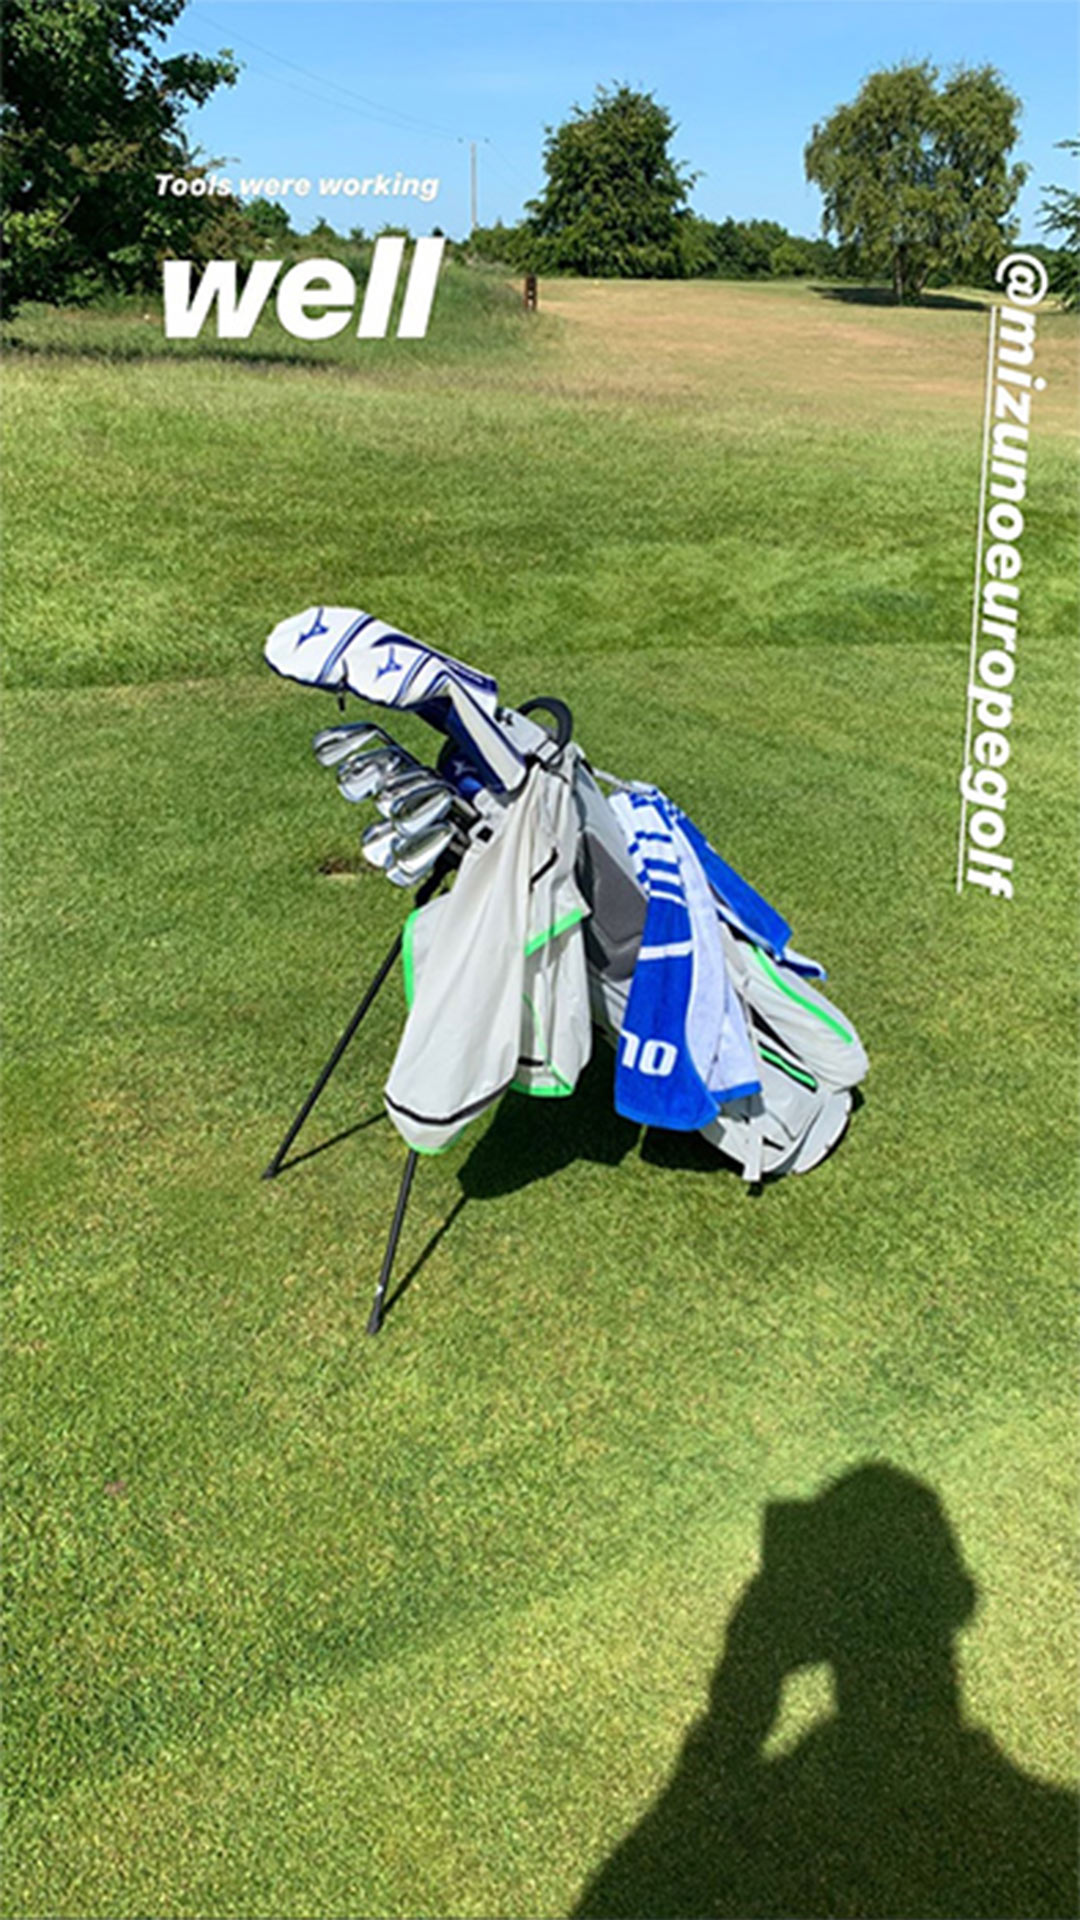 Mike Tindall's golf clubs